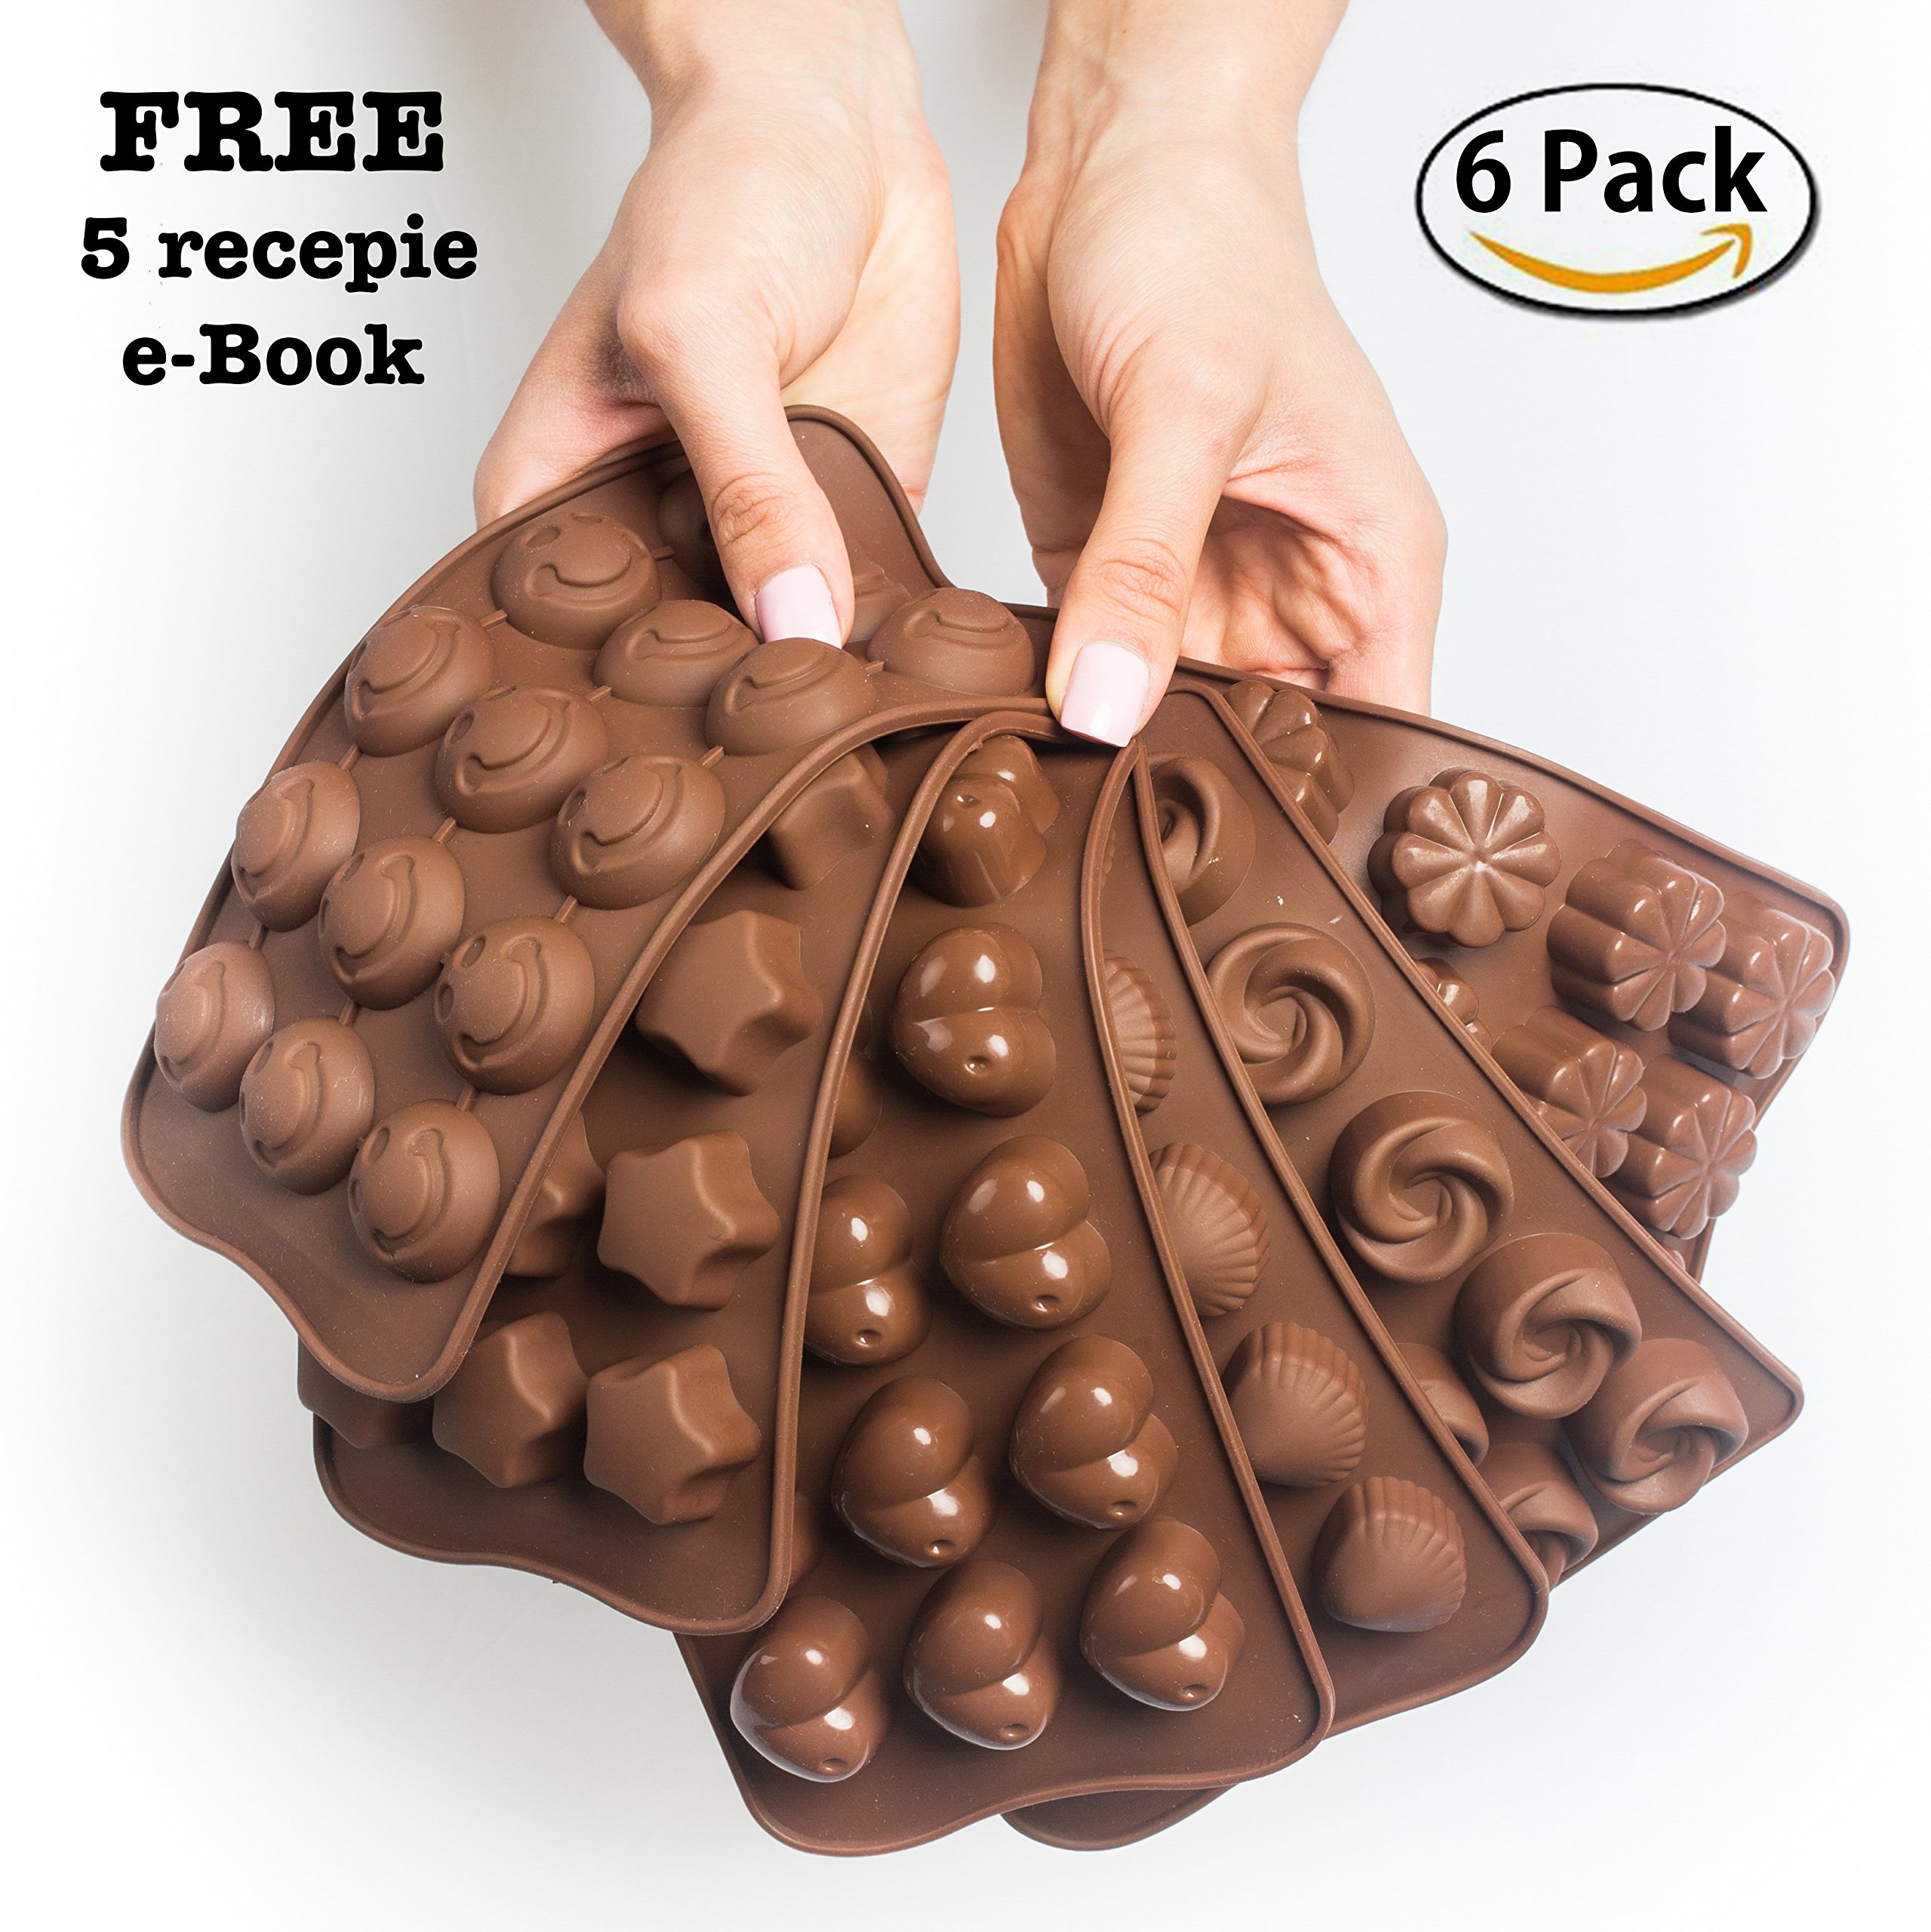 6 Pack Silicone Candy Molds + EBook With 5 Candy Recipes - Silicone Molds For Fat Bombs - Candy Molds Silicone - Chocolate Molds Silicon Molds Candy Mold Silicon Mold Hard Candy Molds Fat Bomb Molds by Mighty Cleaner (Image #8)